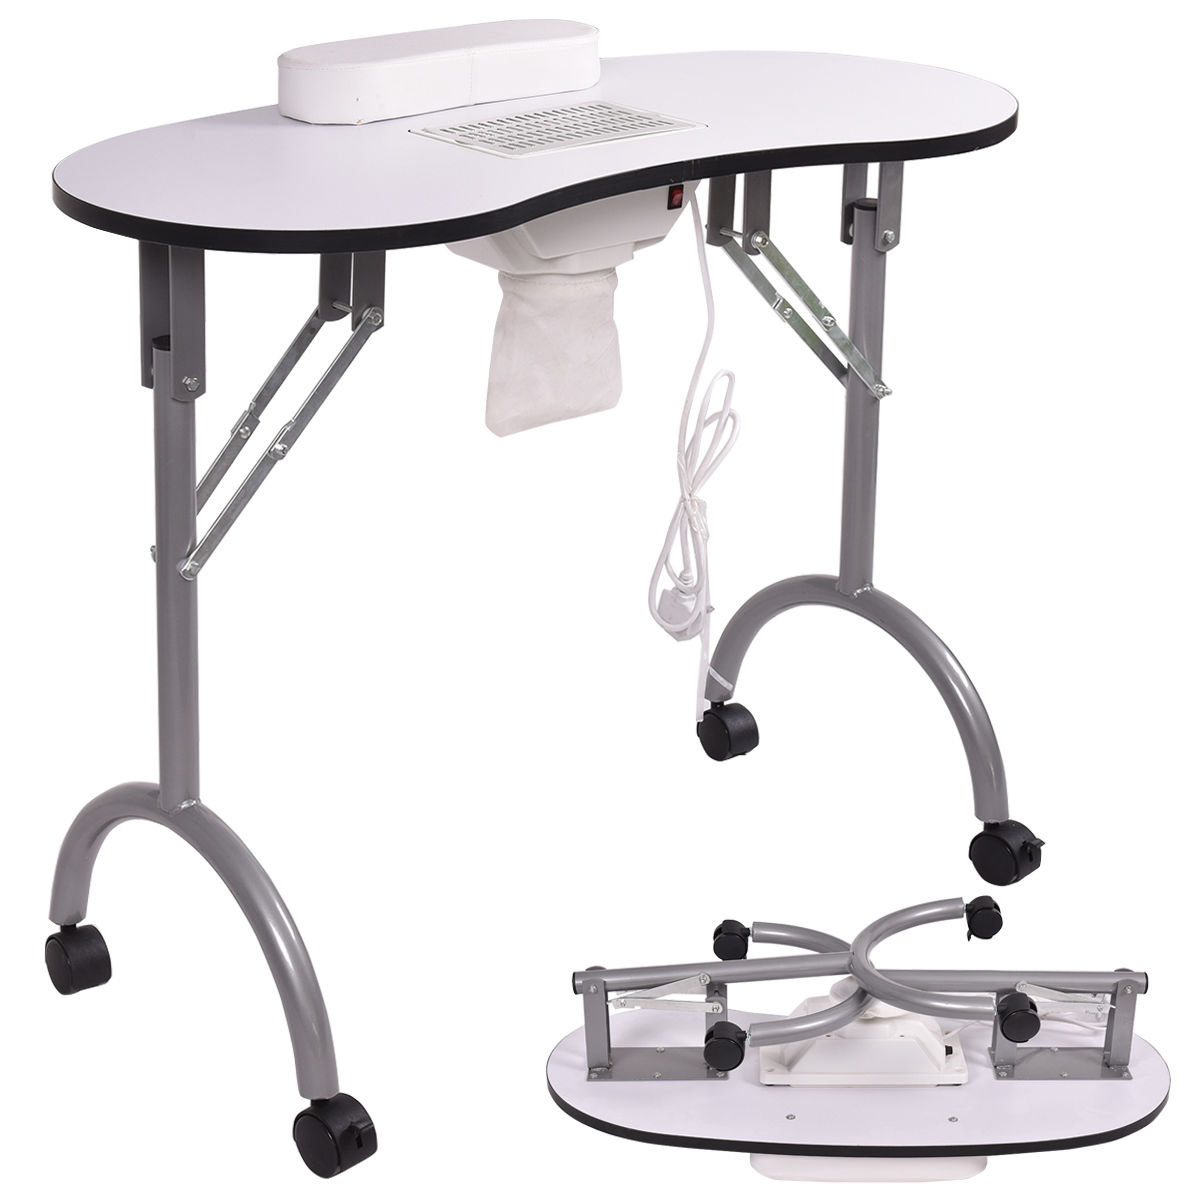 Costway White Folding Portable Vented Manicure Table Nail Desk Salon Spa With Fan &Bag